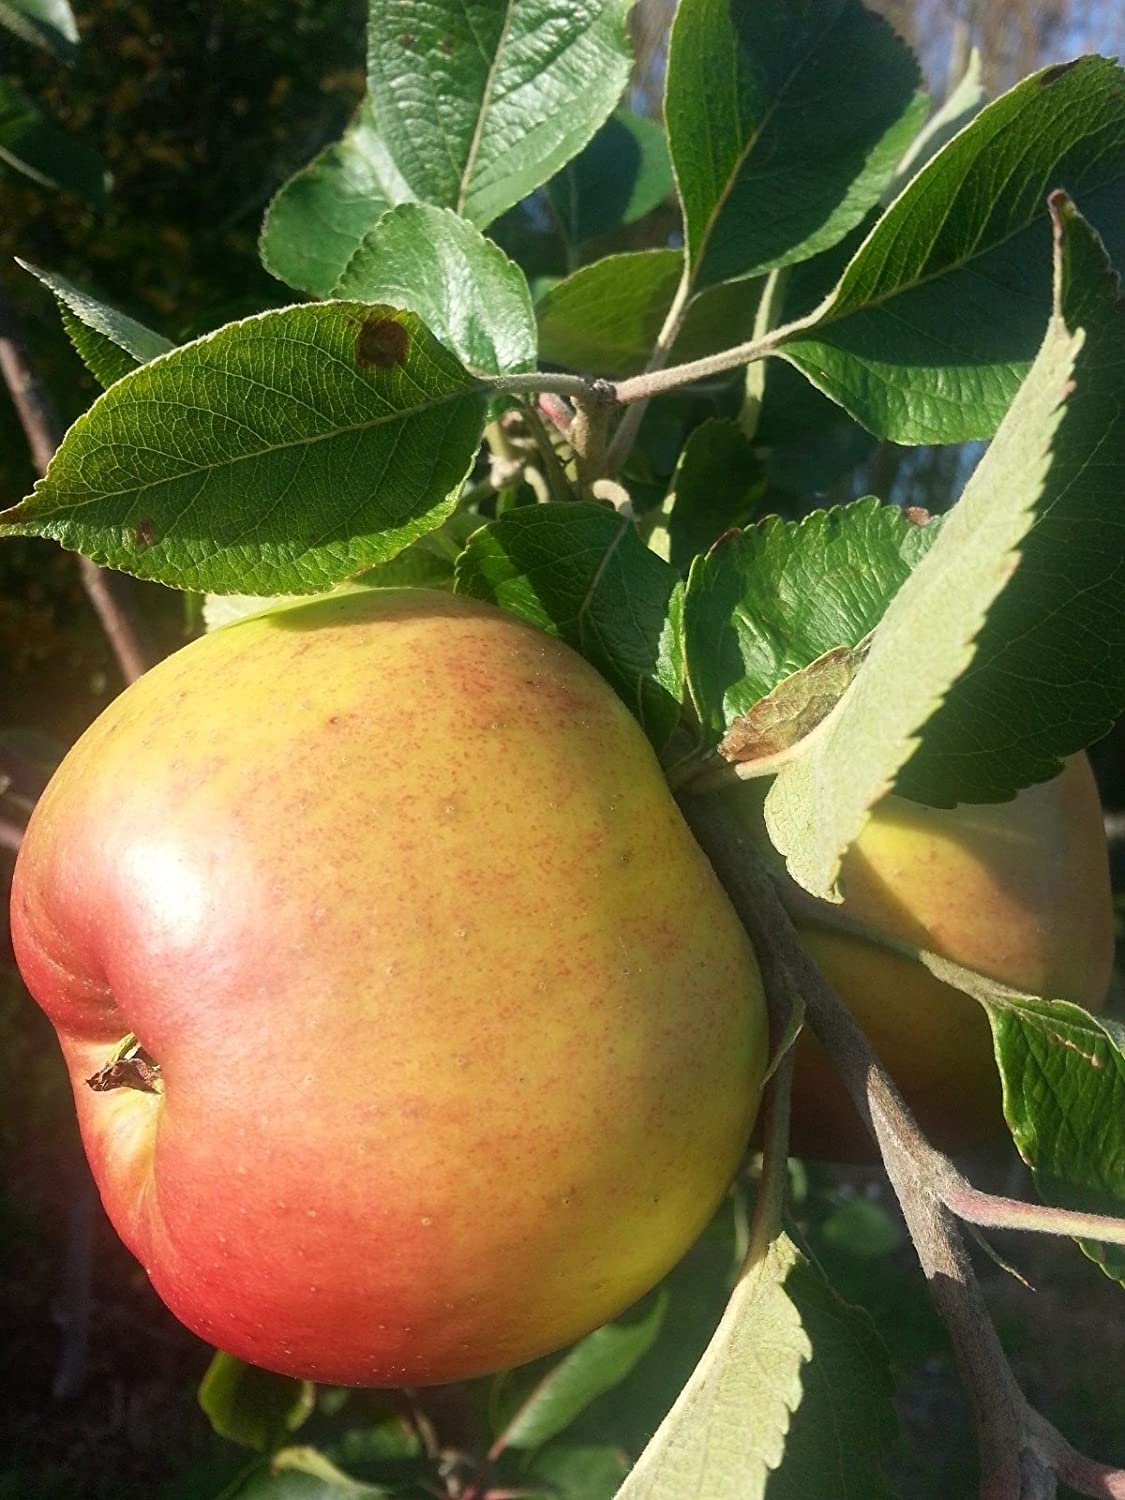 Bramley S Seedling Apple Tree 4 5ft In A 6l Pot Ready To Fruit The Most Popular Cooker 3fatpigs Amazon Co Uk Garden Outdoors